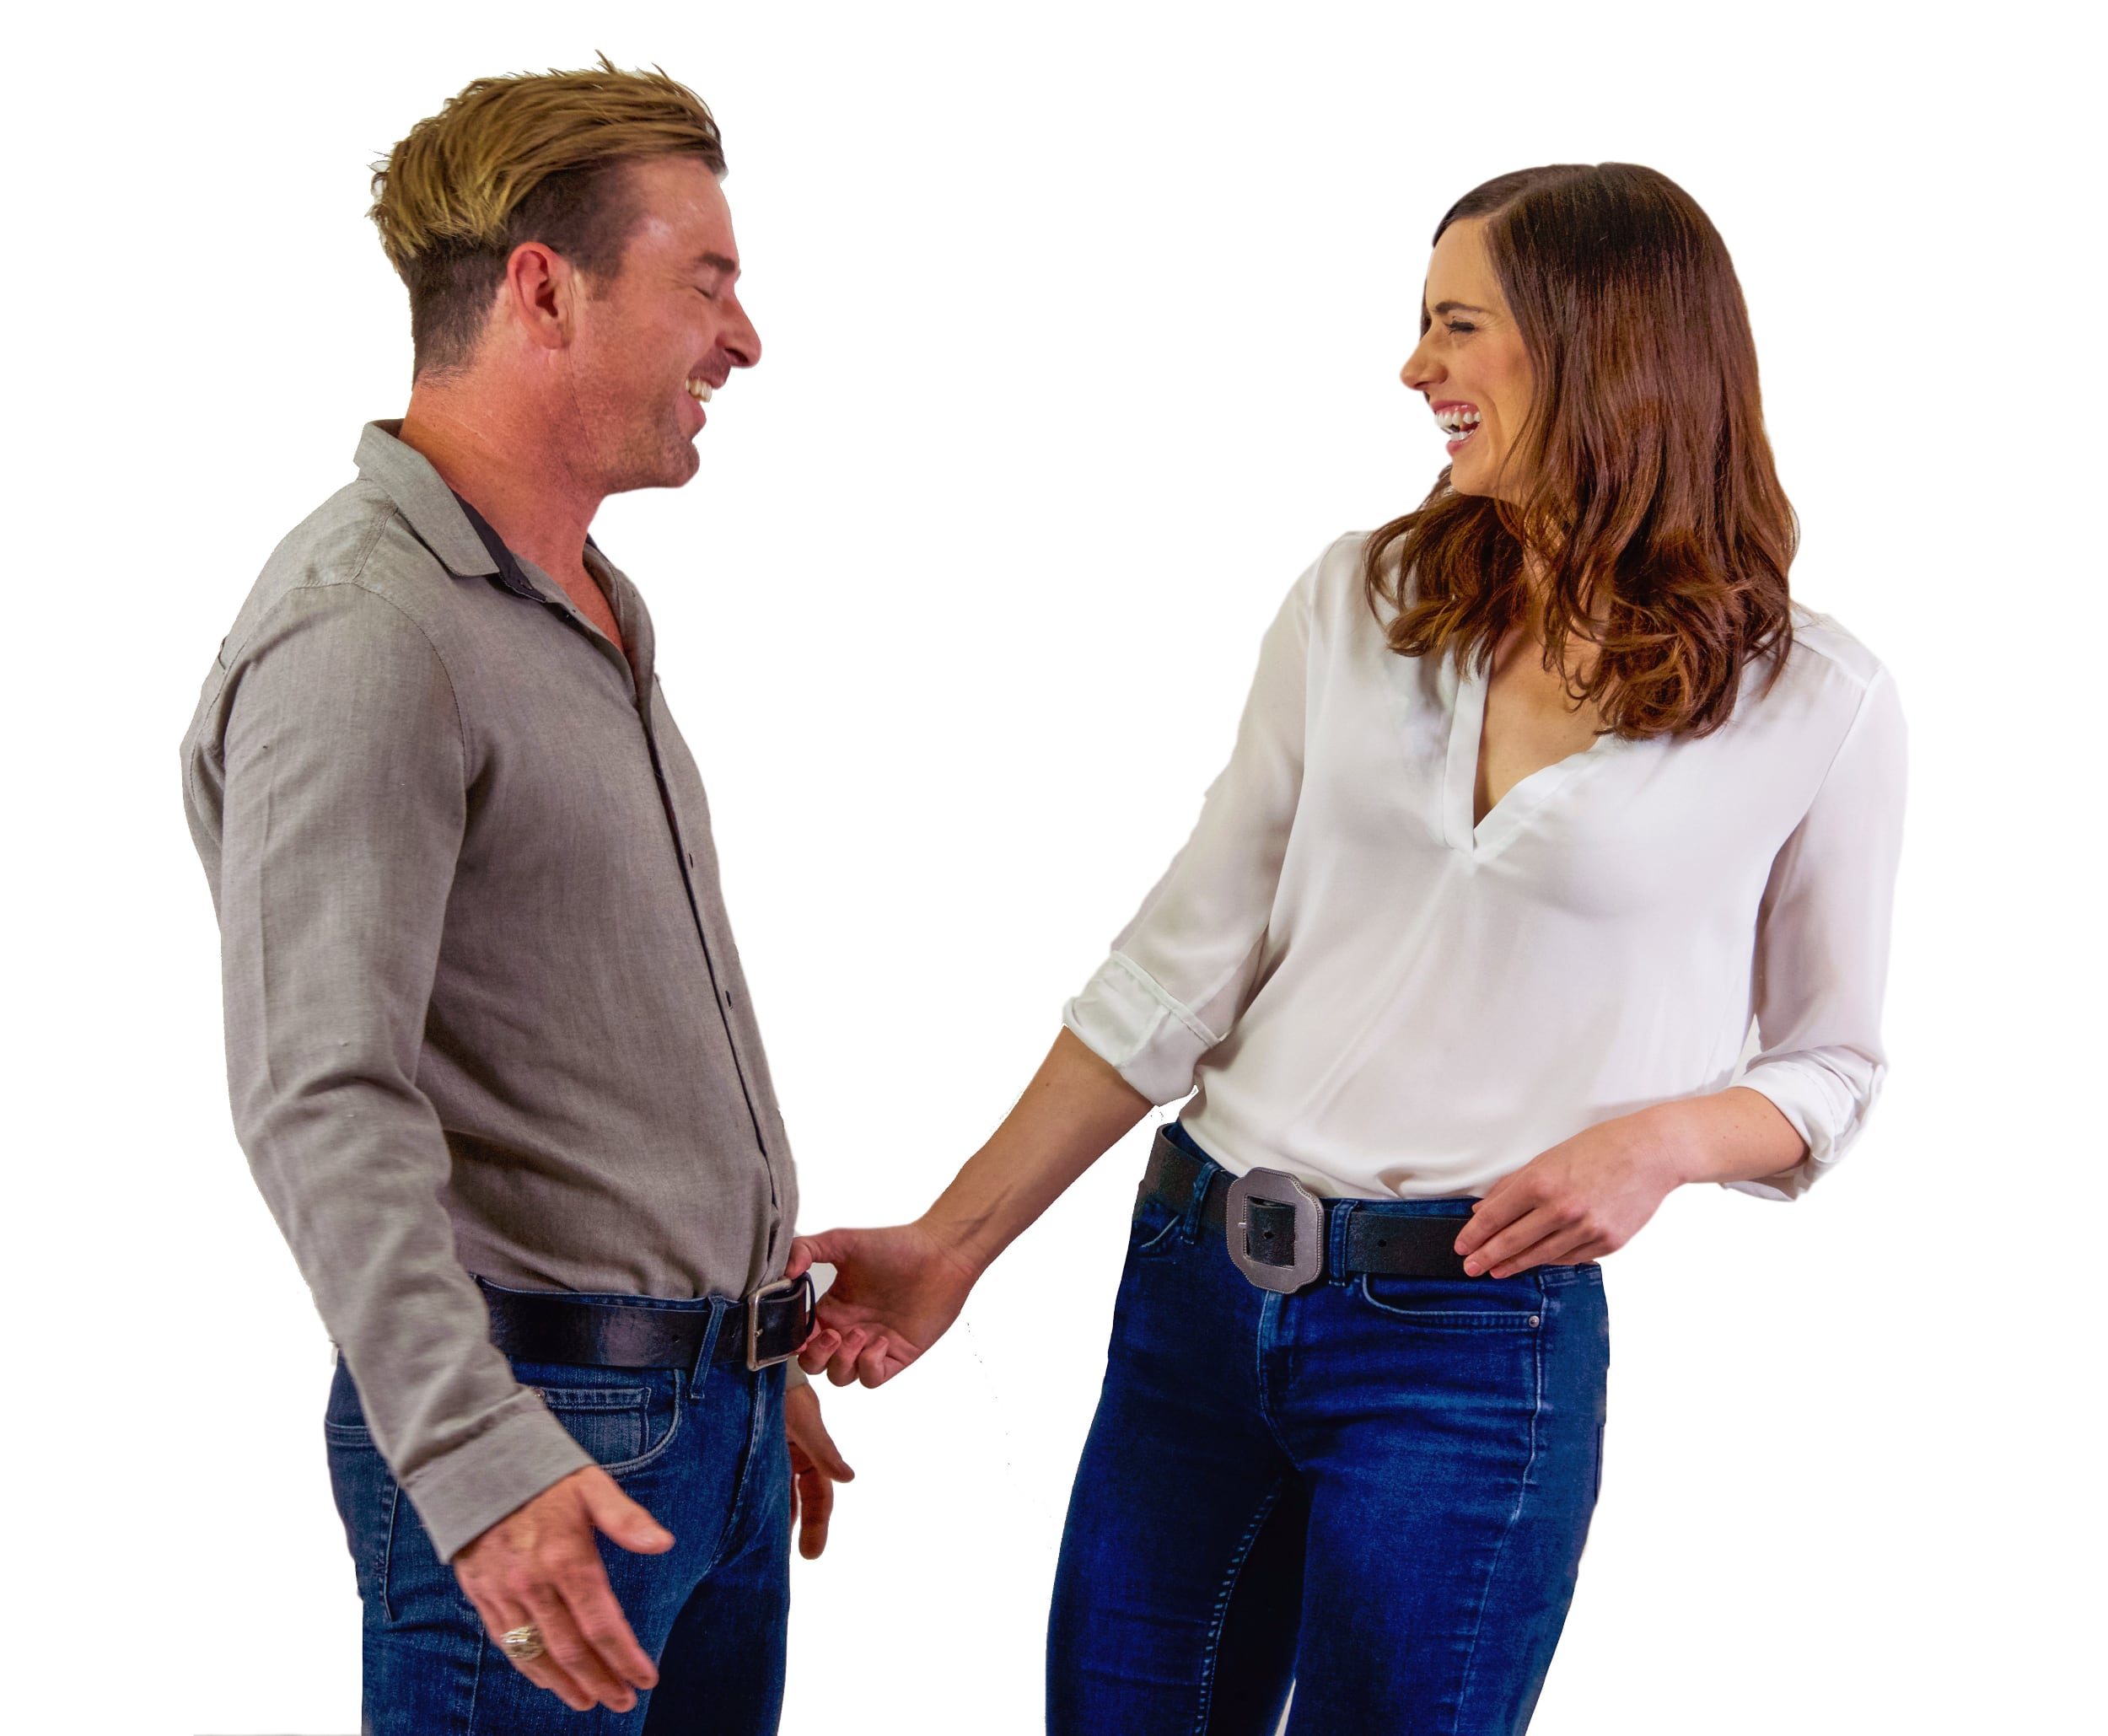 couple with expandable belt flirting